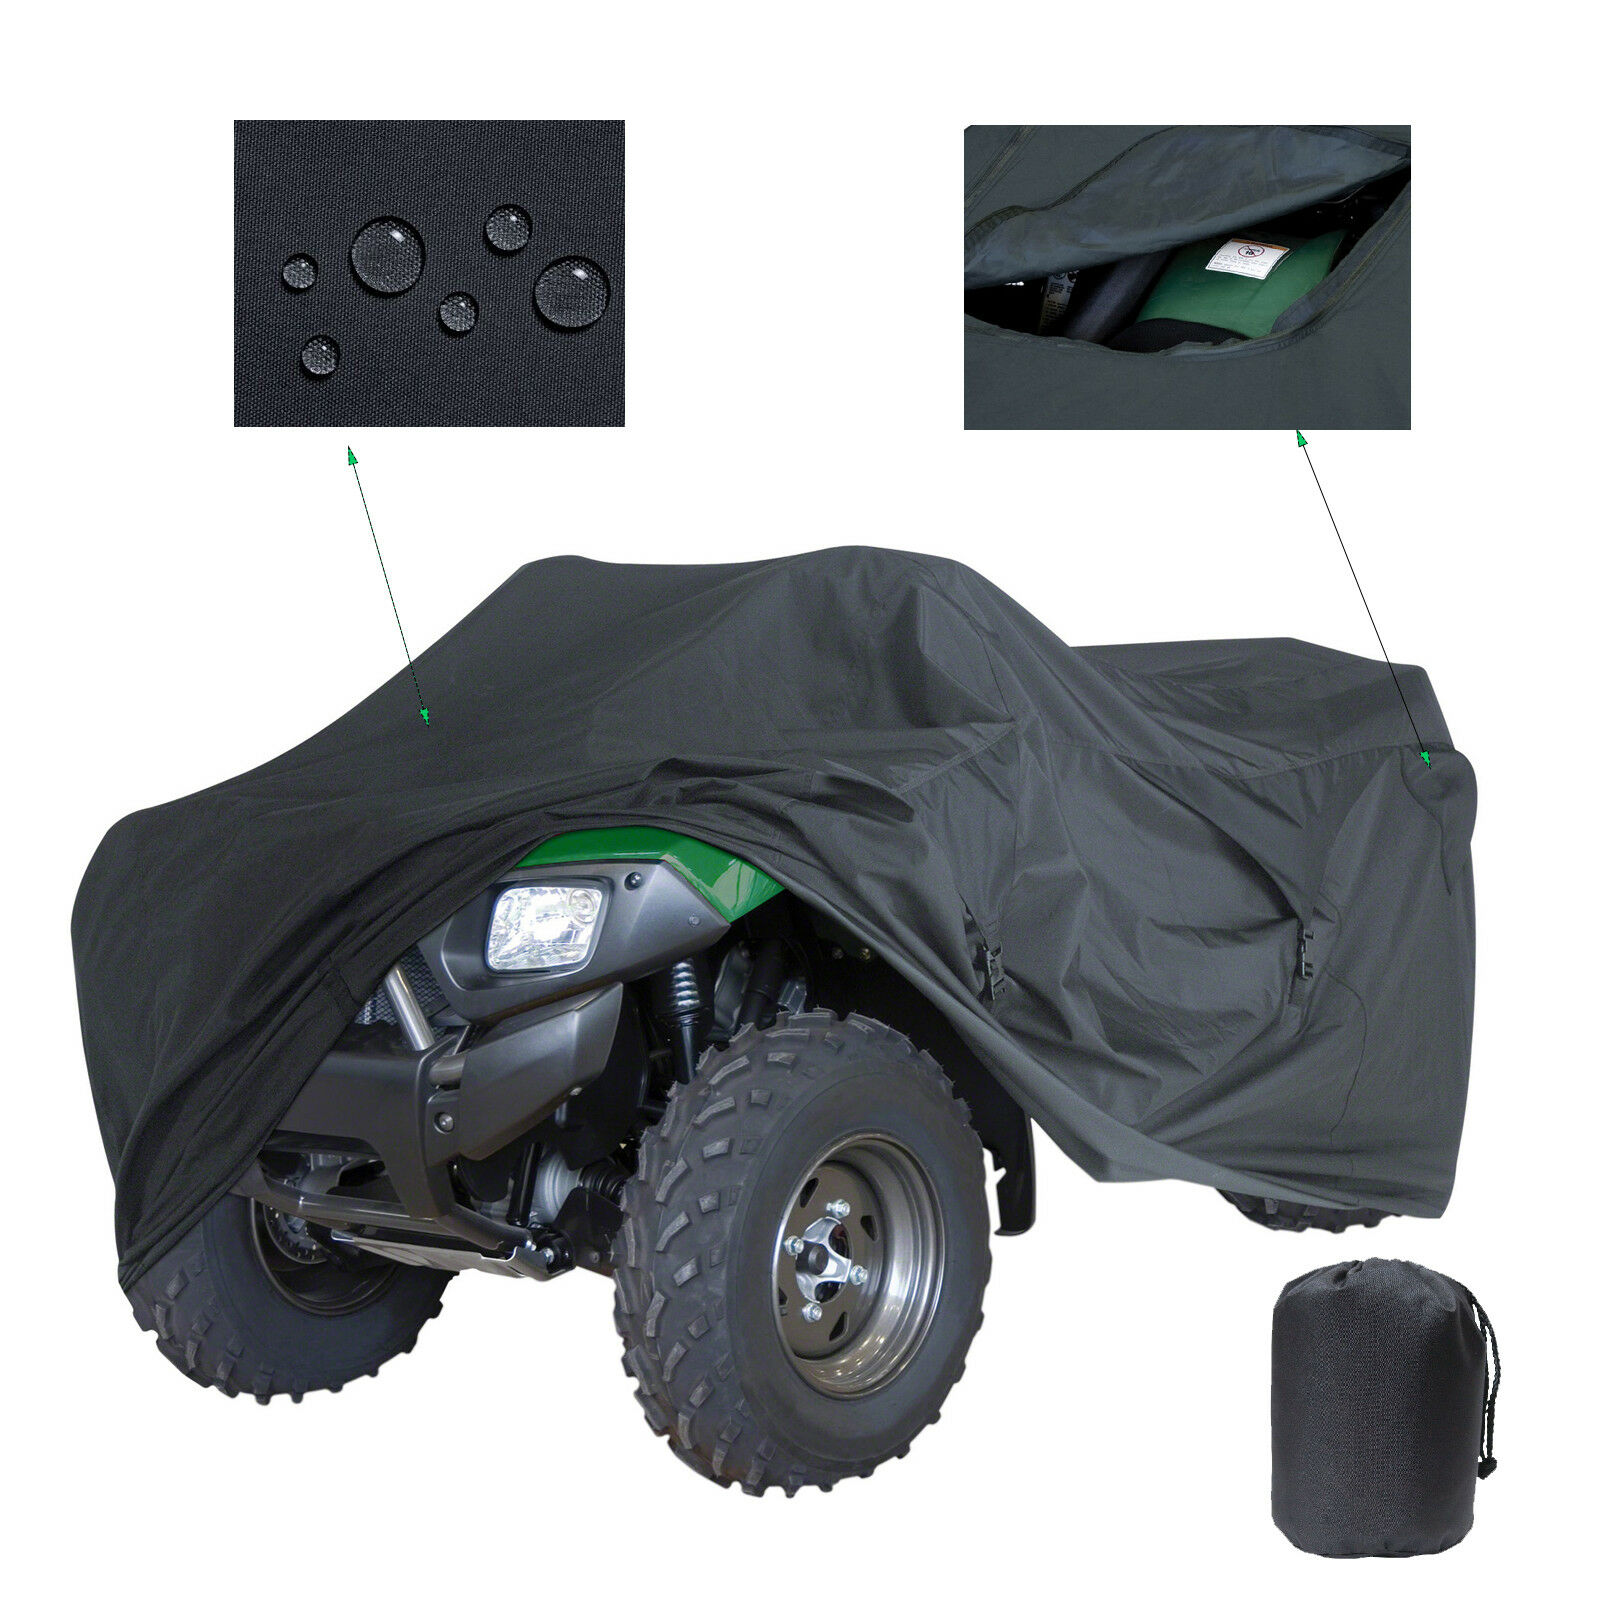 Lightweight 190T Polyester Fiber Black Quad Bike ATV 4-wheel Cover For XXXL <font><b>Polaris</b></font> <font><b>Sportsman</b></font> 400 550 700 <font><b>800</b></font> 850 image